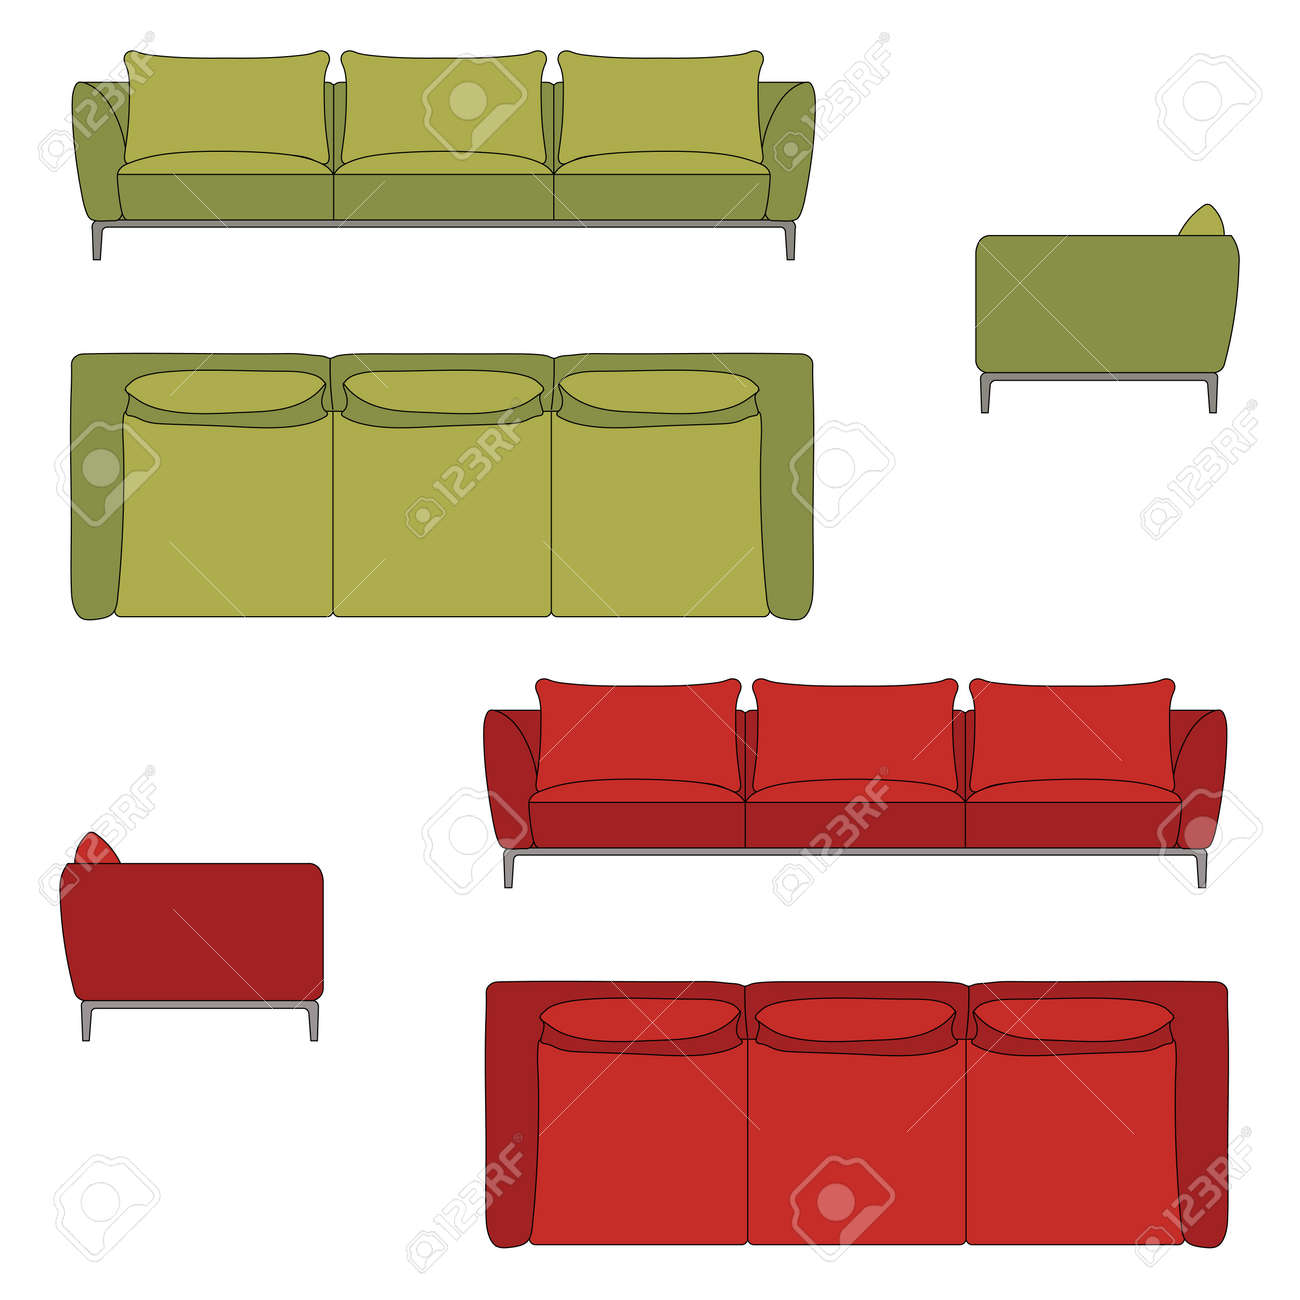 Sofa Set Flat Vector Illustration Top Front Side View Stock